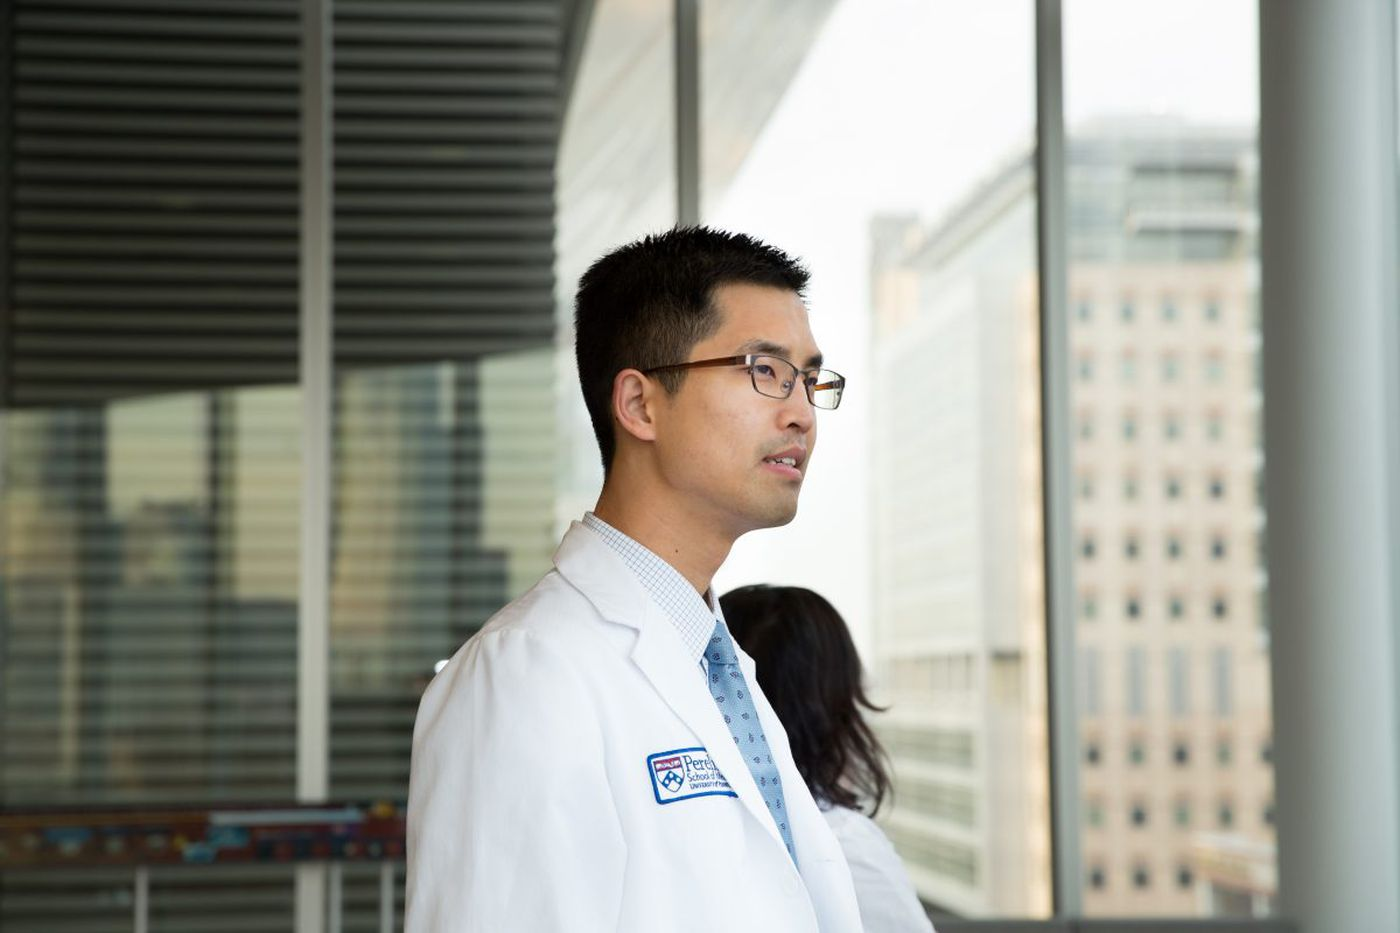 A new doctor sees himself in his patients' anxiety over going home